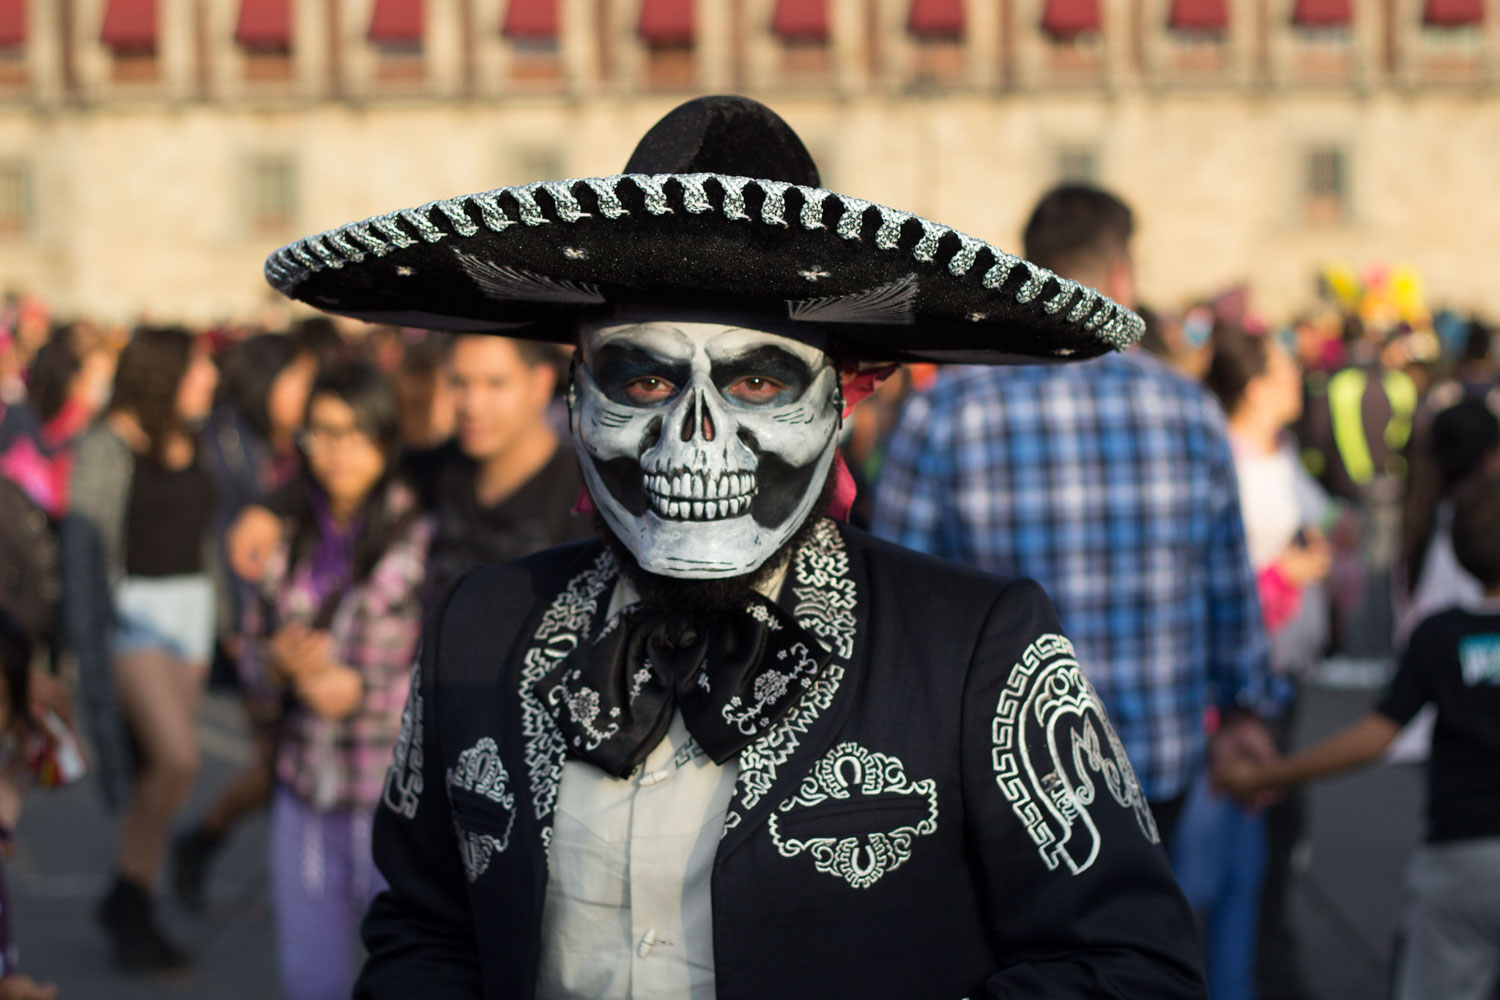 Man dressed up as Charro Negro character during day of the dead.